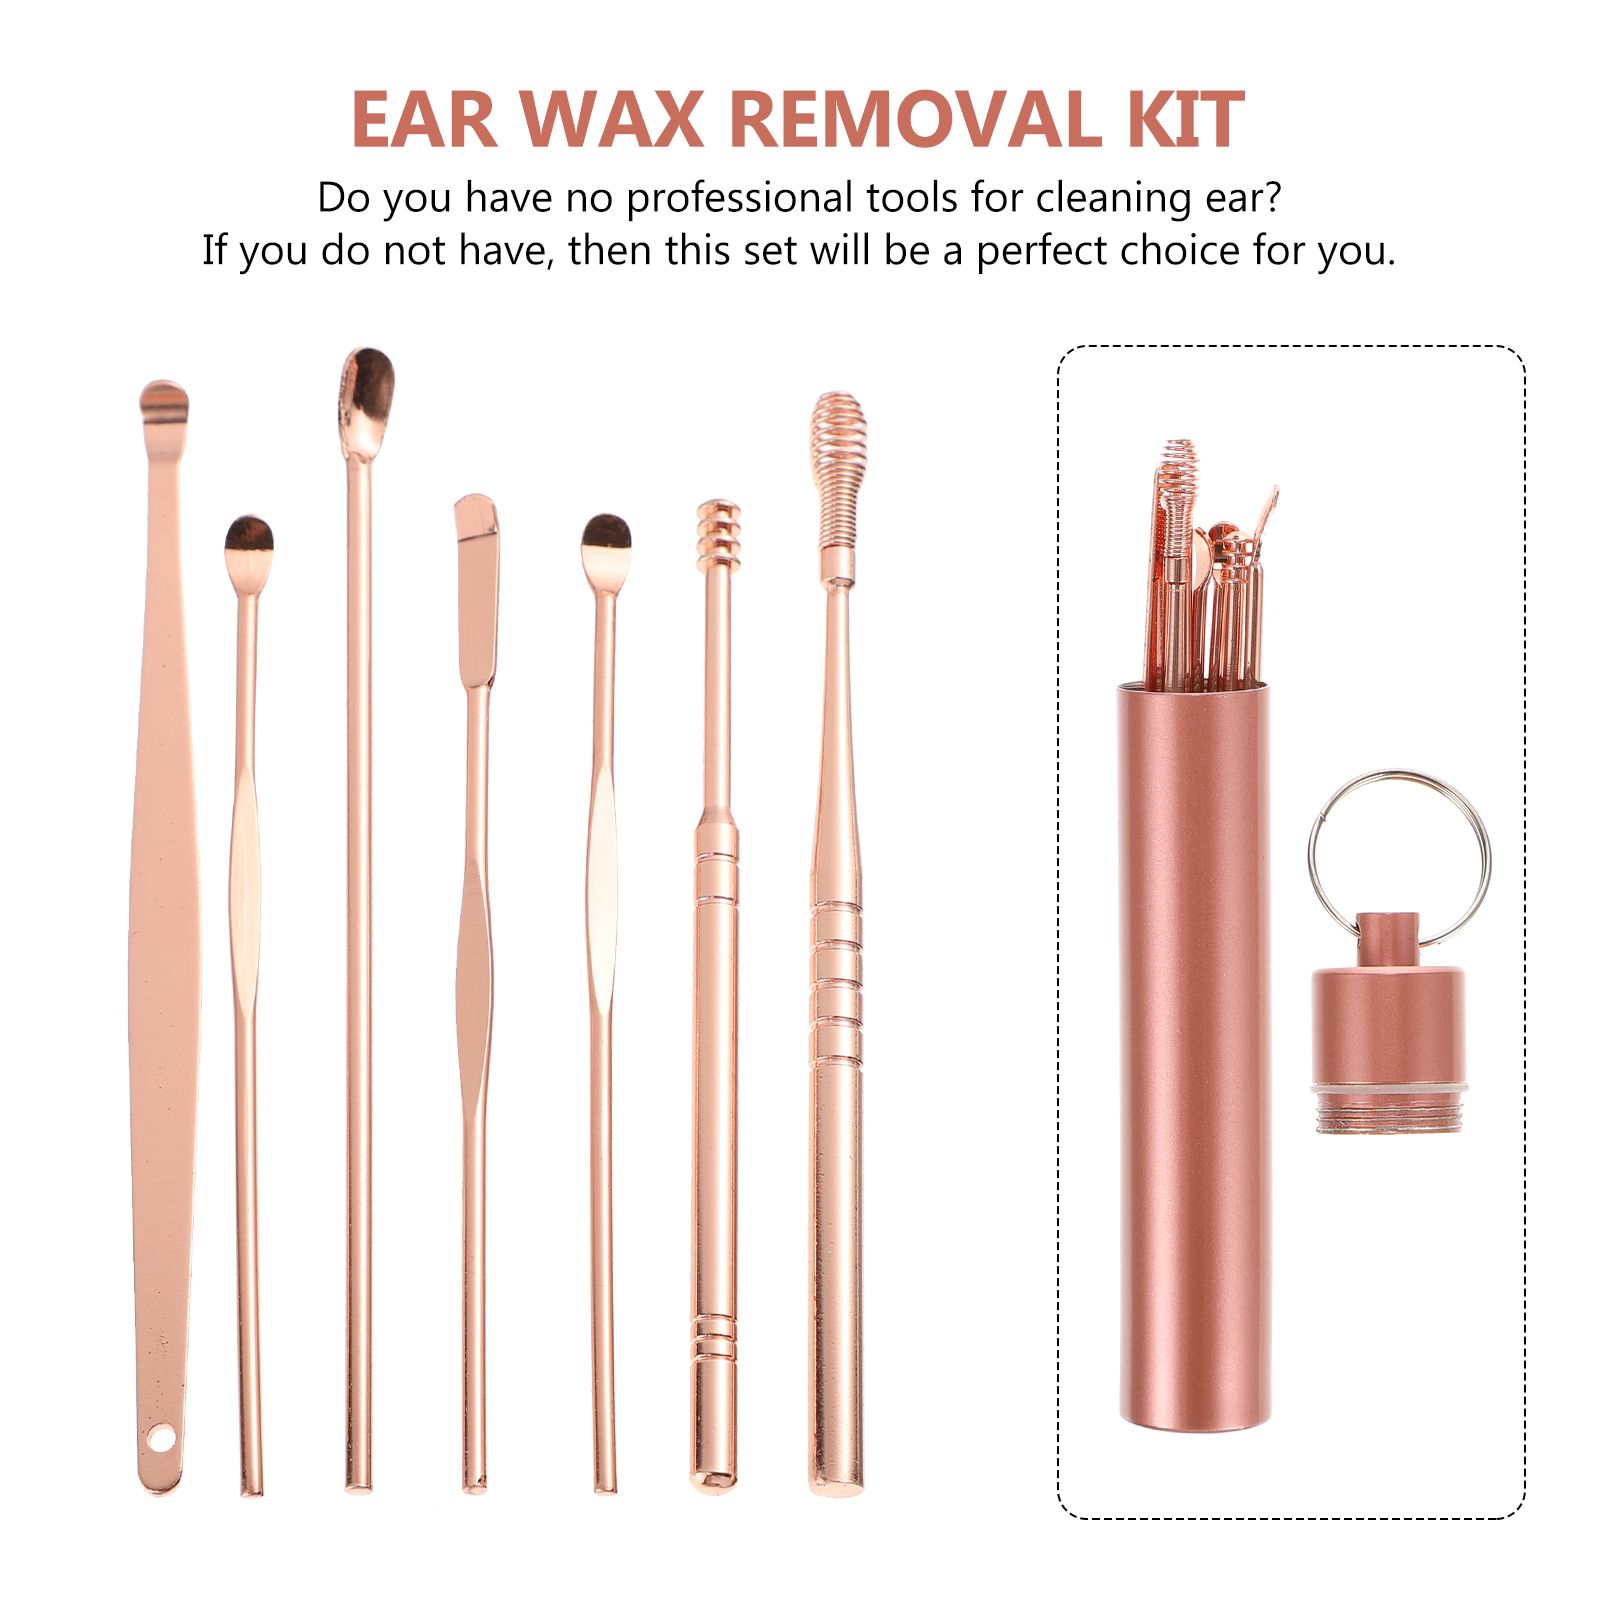 7Pcs Ear Pick Earwax Removal Kit,Portable Stainless Steel Ear Wax Removal Tool,Soothing & Anti-Itch Ear Cleaner Tool with Detachable Keychain Box,Reusable Ear Cleaning kit for Family-Rose Gold